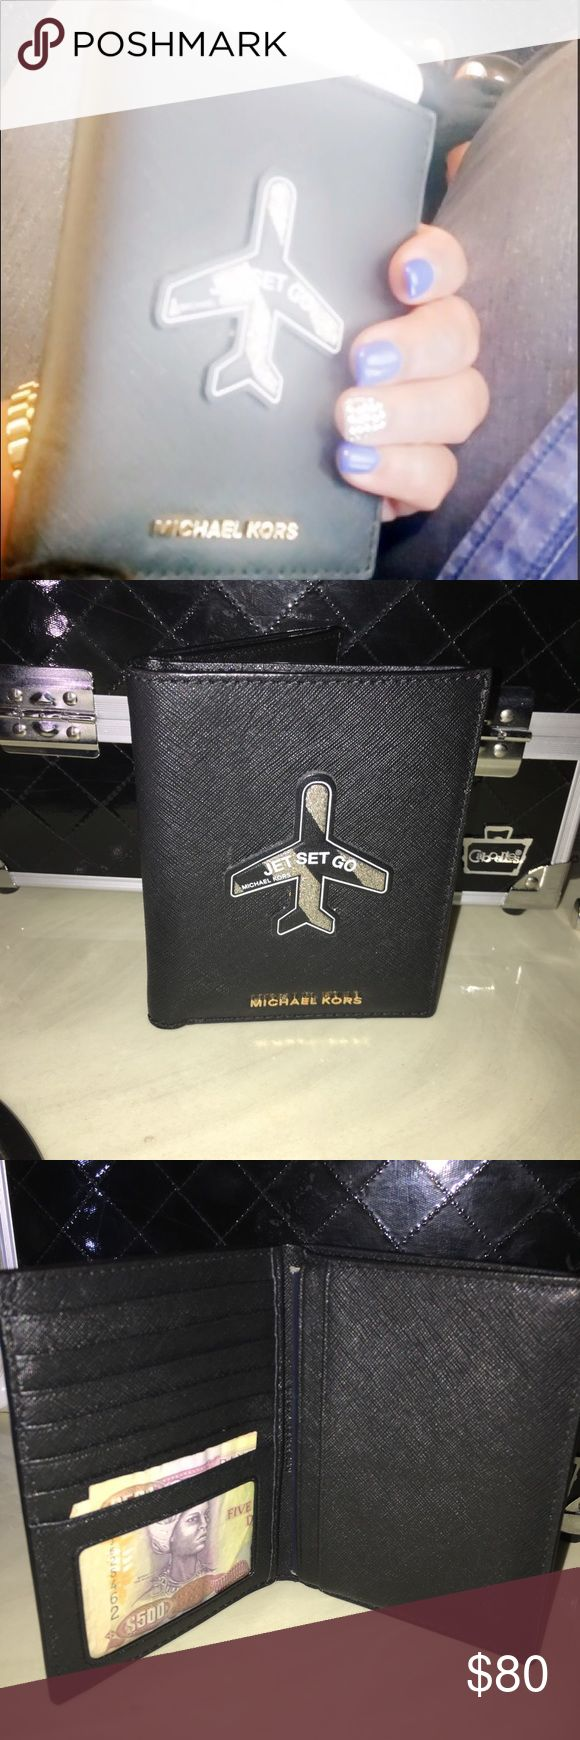 Michael Kors Jet Set Passport Cover (SOLD OUT) ✅ITEM WILL BE VIDEOTAPED WHILE BEING PACKED AT THE POST OFFICE✅ 🚫NO LOWEST🚫NO TRADES.  PRICED TO SELL.  CONDITION: 10/10.  Almost a year old, moving on from this, time for a new jet setter. This is so me & my lifestyle.  The sticker is stuck on & cannot be removed, Saffiano leather, 6 card slots, 1 ID slot, 3 interior & 1 cash slot.  Super classy stylish & trendy.  NO LONGER AVAILABLE.  Questions welcomed. Michael Kors Bags Wallets